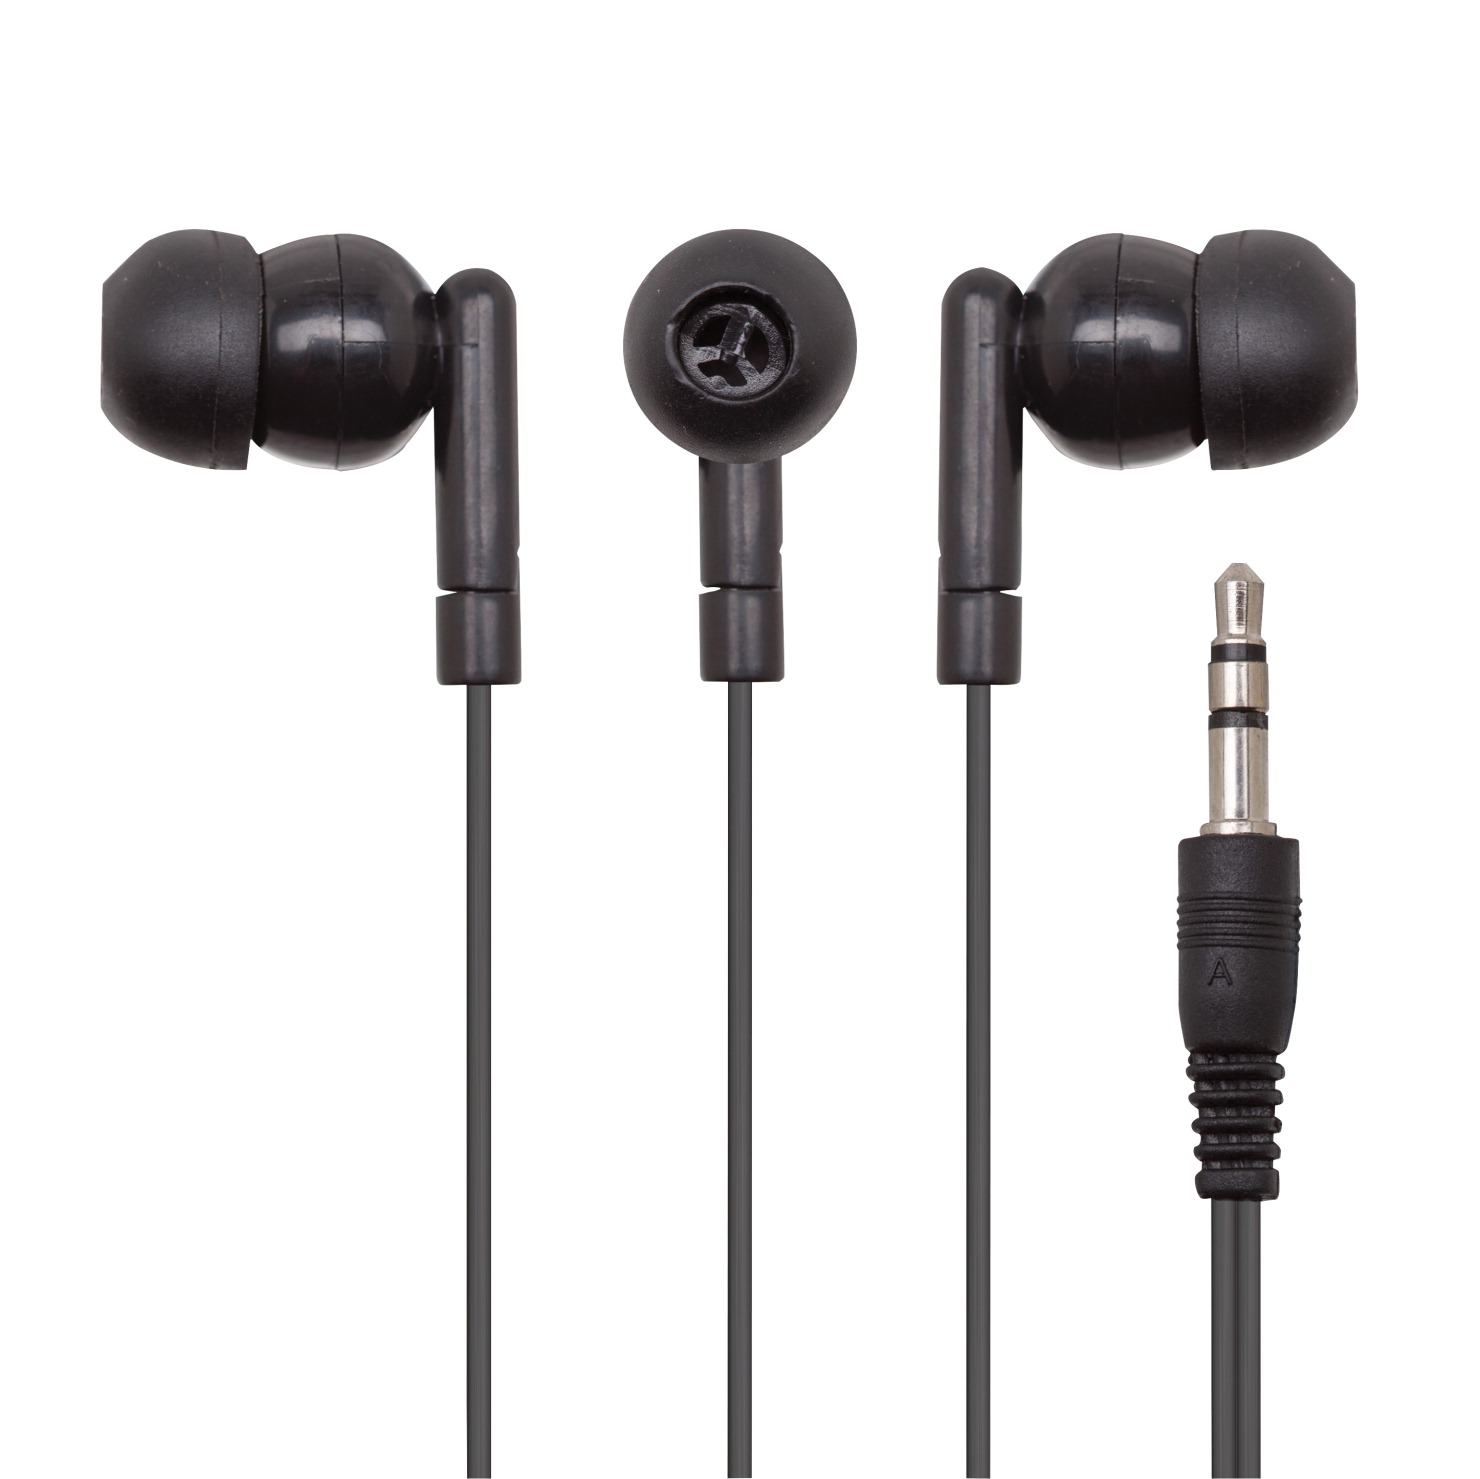 Califone E1 Economy Ear Bud with 3.5mm Plug